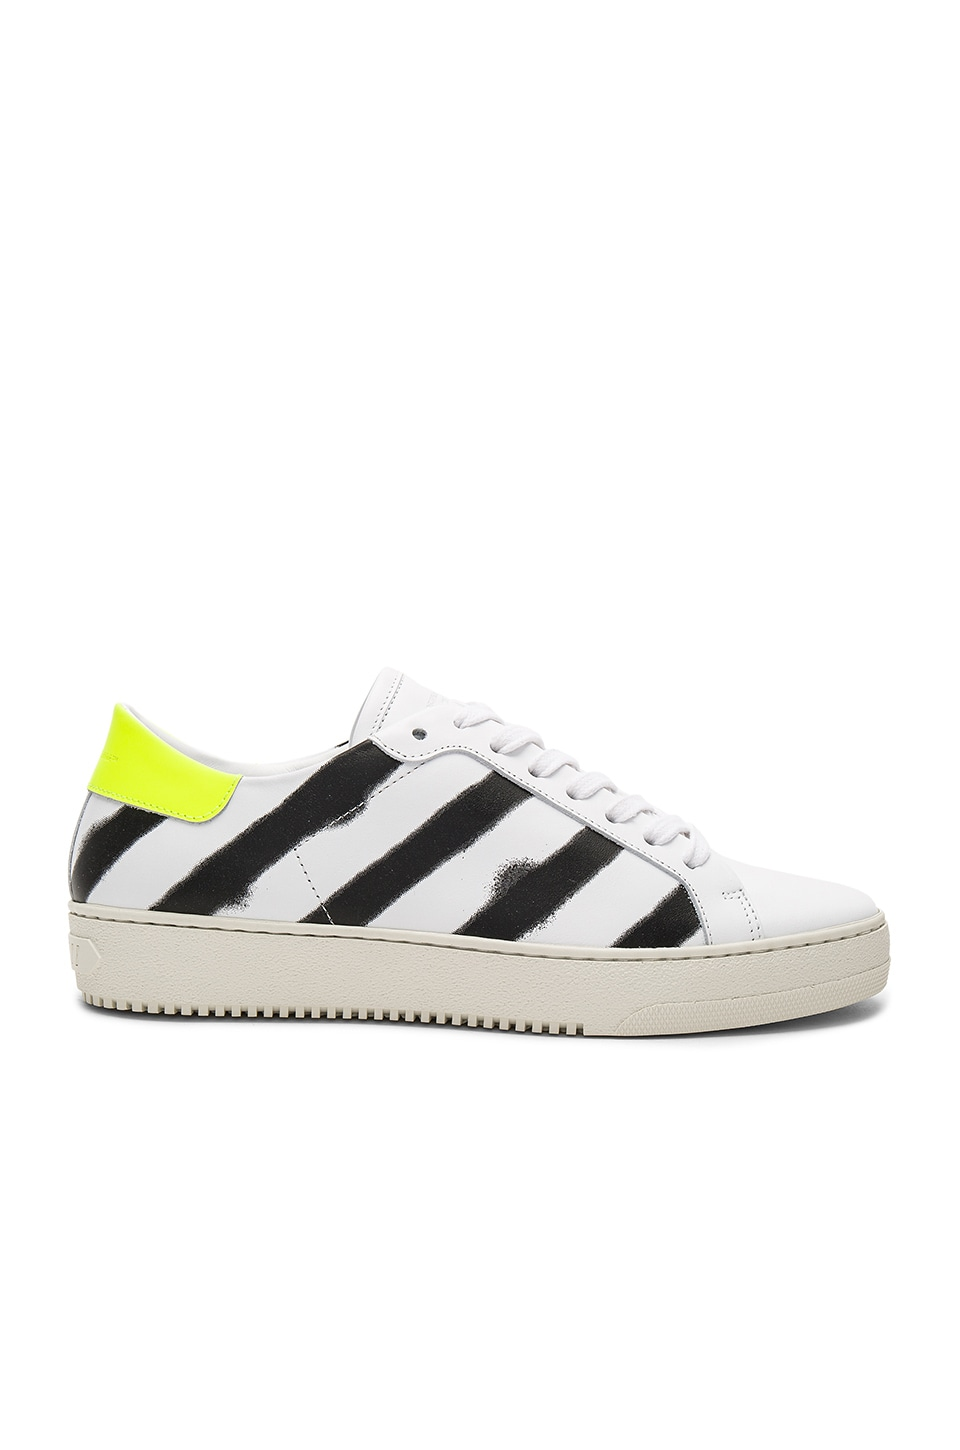 OFF-WHITE Spray Diagonal Sneakers in White & Black